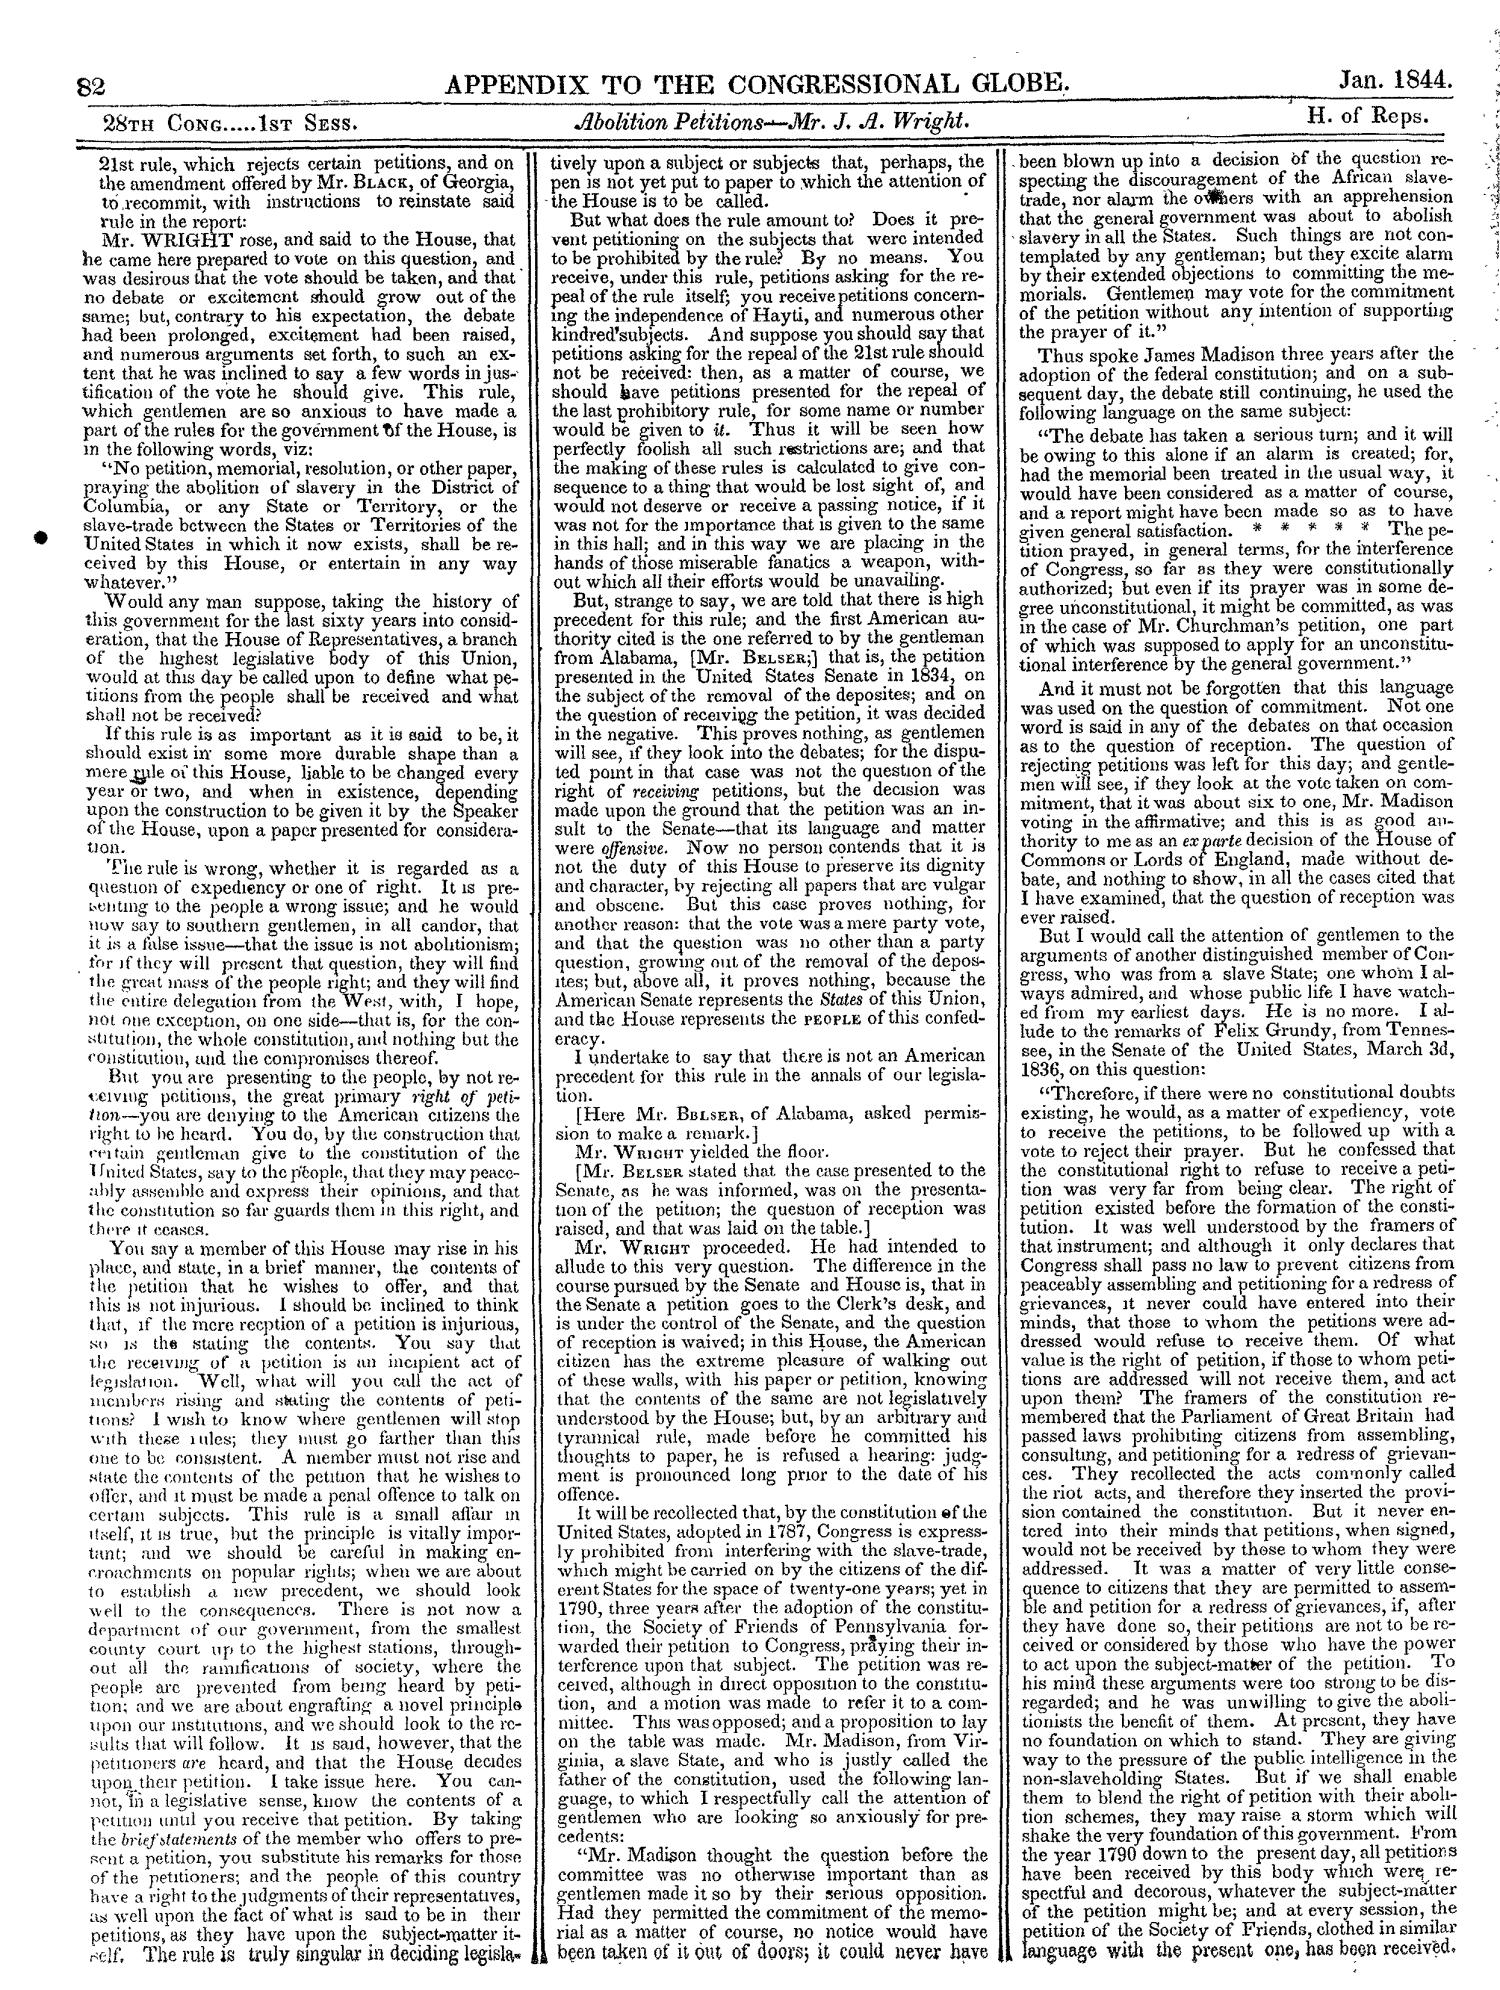 The Congressional Globe, Volume 13, Part 2: Twenty-Eighth Congress, First Session                                                                                                      82